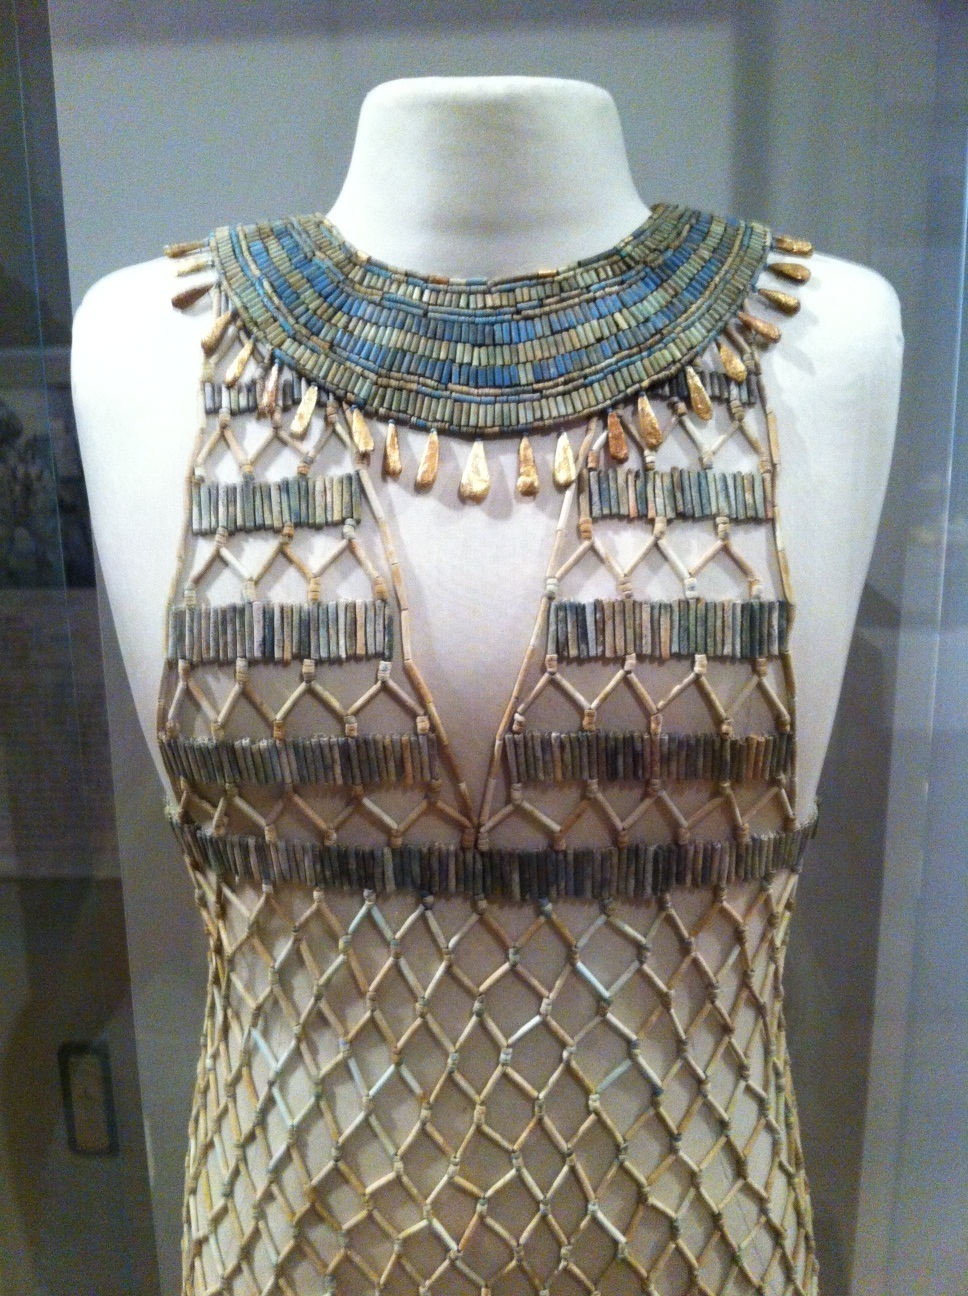 D   etail, bead-net dress and broad collar whose remains were found during excavations of the tomb of a female interred at Giza during the reign of King Khufu, ca. 2500 BCE. Both pieces were reconstructed by Millicent Jick (1928-2010), a volunteer gallery instructor at the Museum of Fine Arts, Boston.  The cylinder and disk beads are Egyptian faience. The pendants on the broad collar are made of gold. Image courtesy Museum of Fine Arts, Boston.